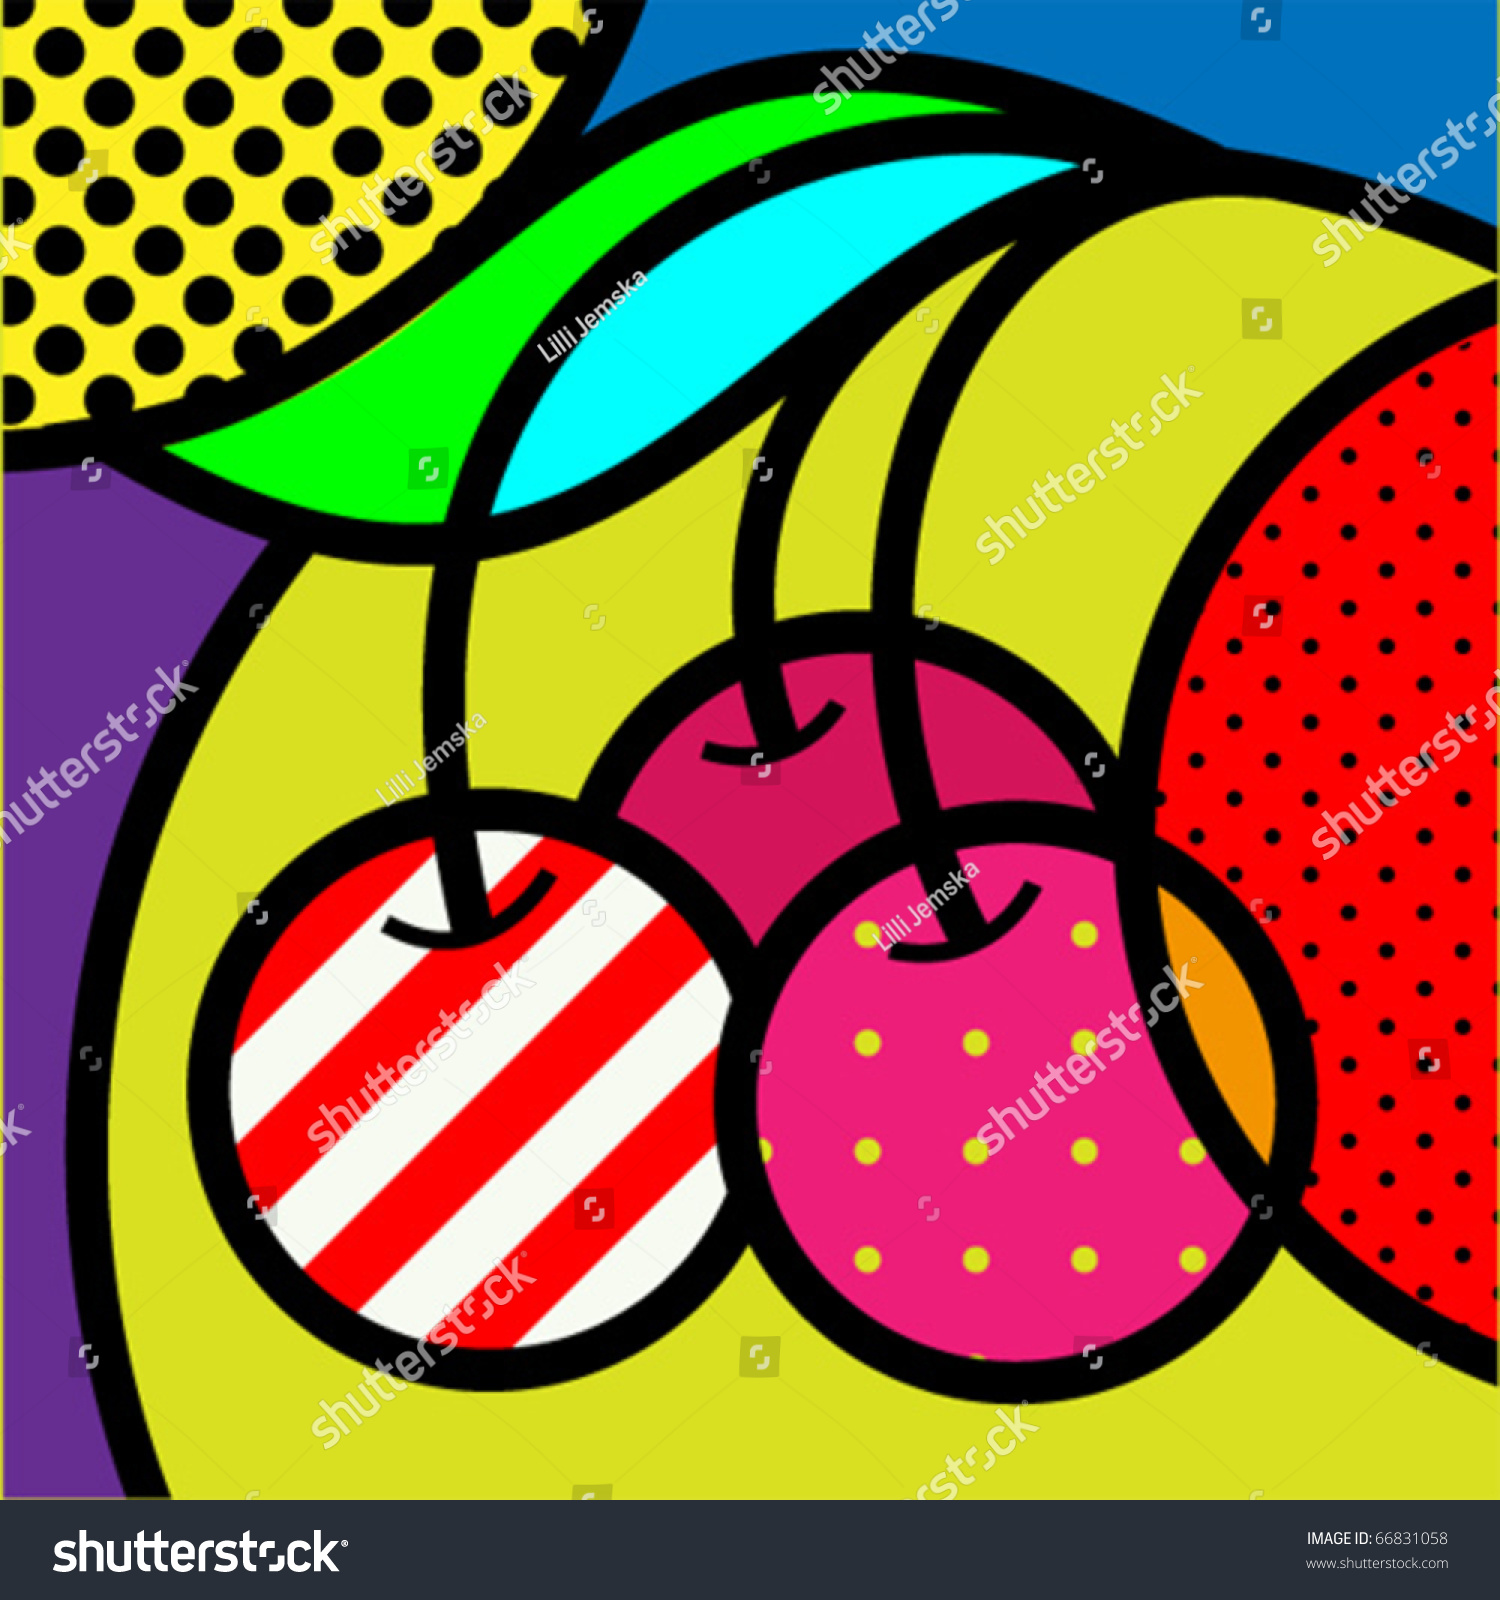 cherry popart fruits vector illustration design stock vector 66831058 shutterstock. Black Bedroom Furniture Sets. Home Design Ideas